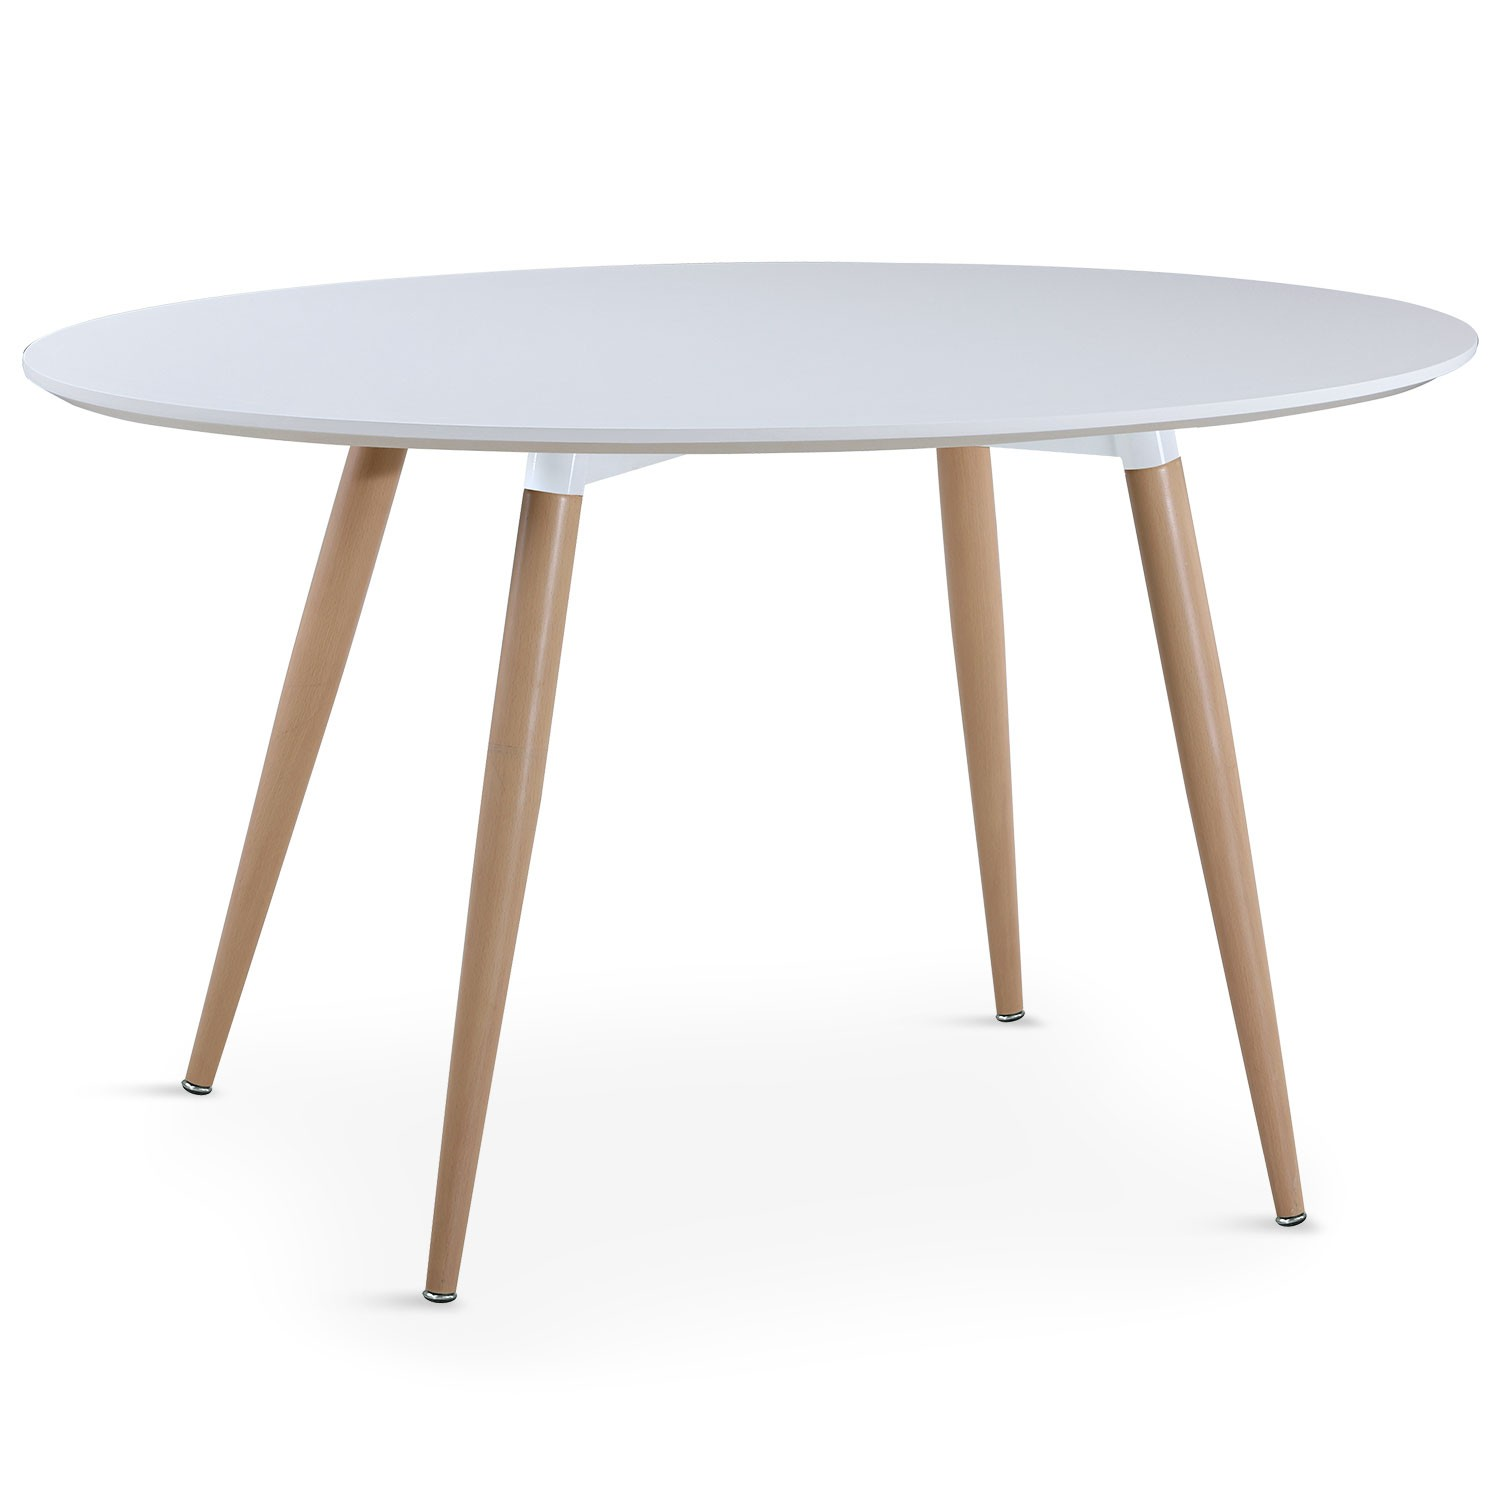 Table ovale scandinave lunea blanc table de repas for Table a rallonge scandinave